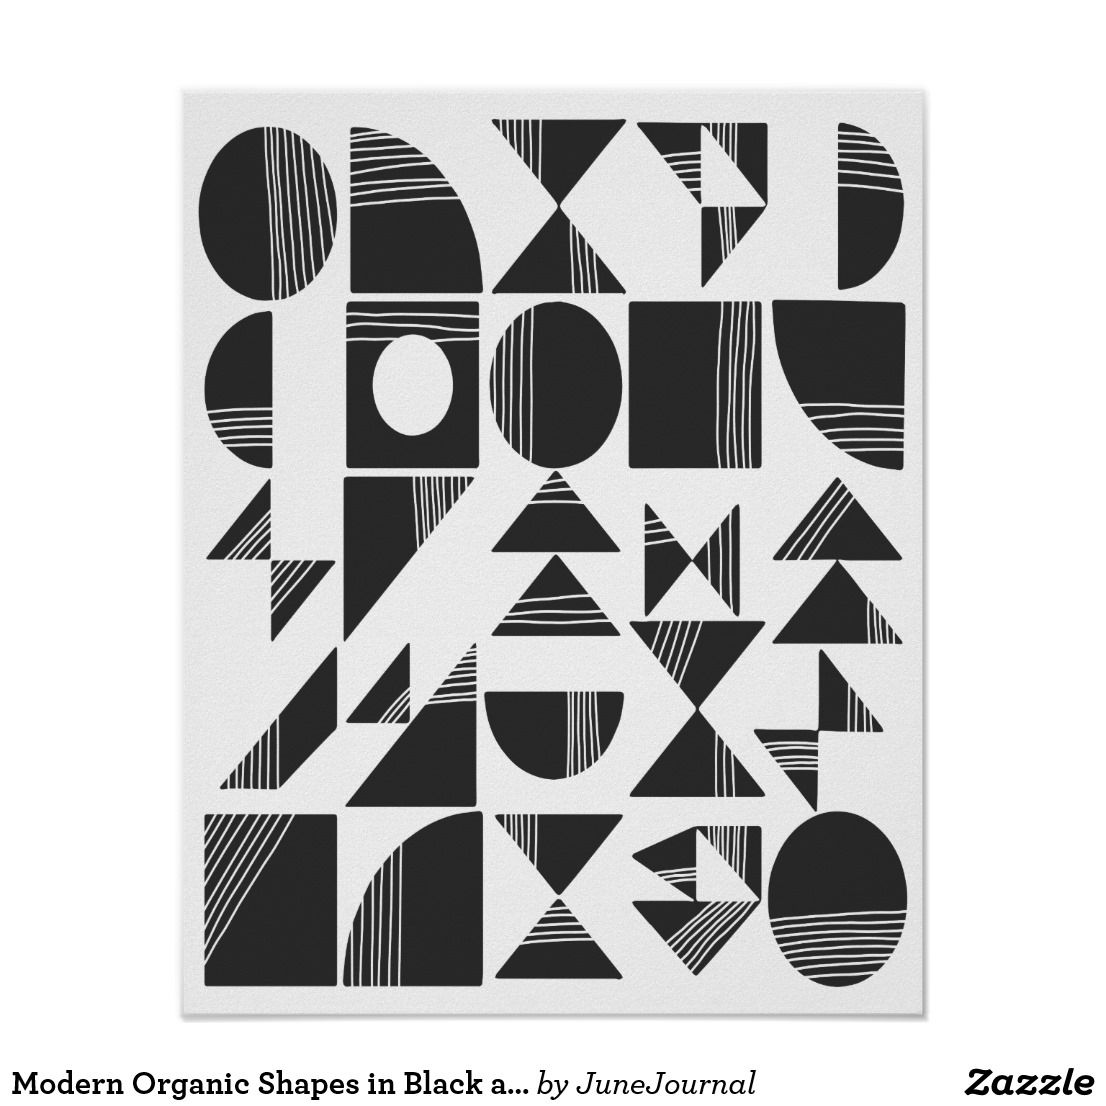 Modern Abstract Geometric Shapes Black And White Poster Zazzle Com Modern Pattern Geometric Black And White Artwork Geometric Shapes